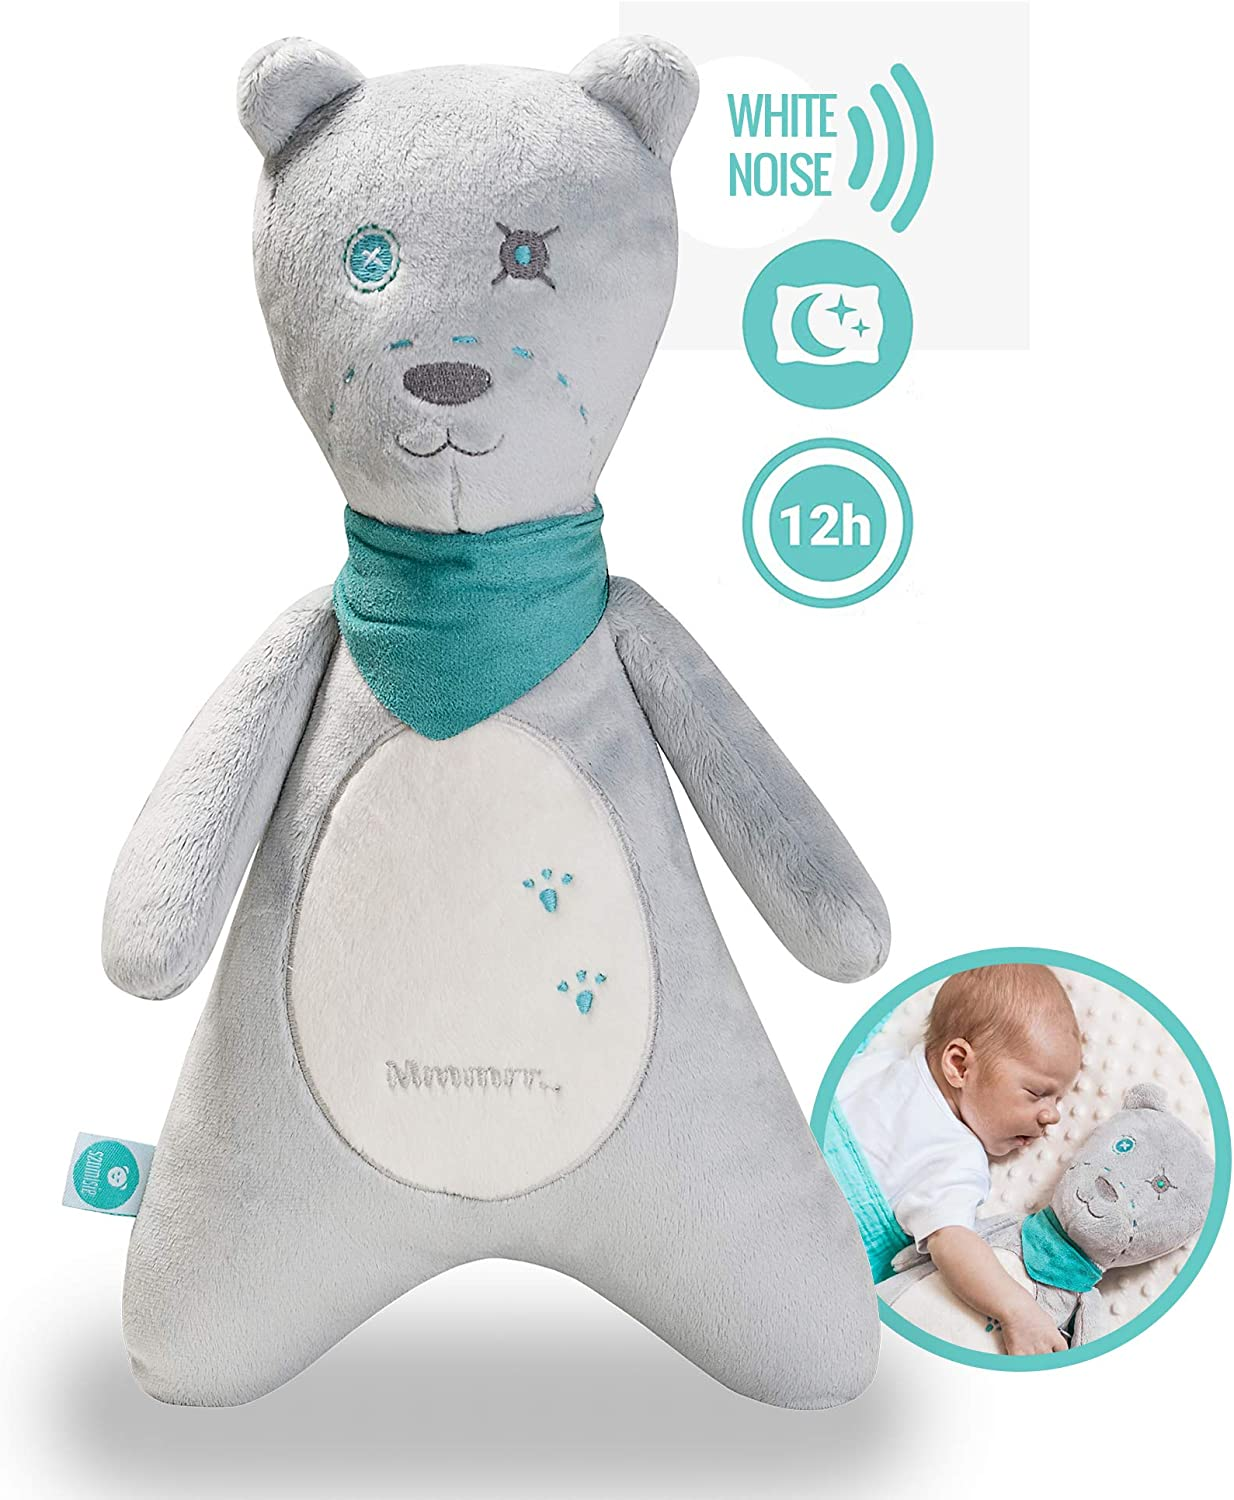 myHummy Baby Sleep Soother Teddy Bear (Boy) Plush Sound Machine with 5 White Noise Sound Options - 60 Minute or 12 Hour Continuous Options